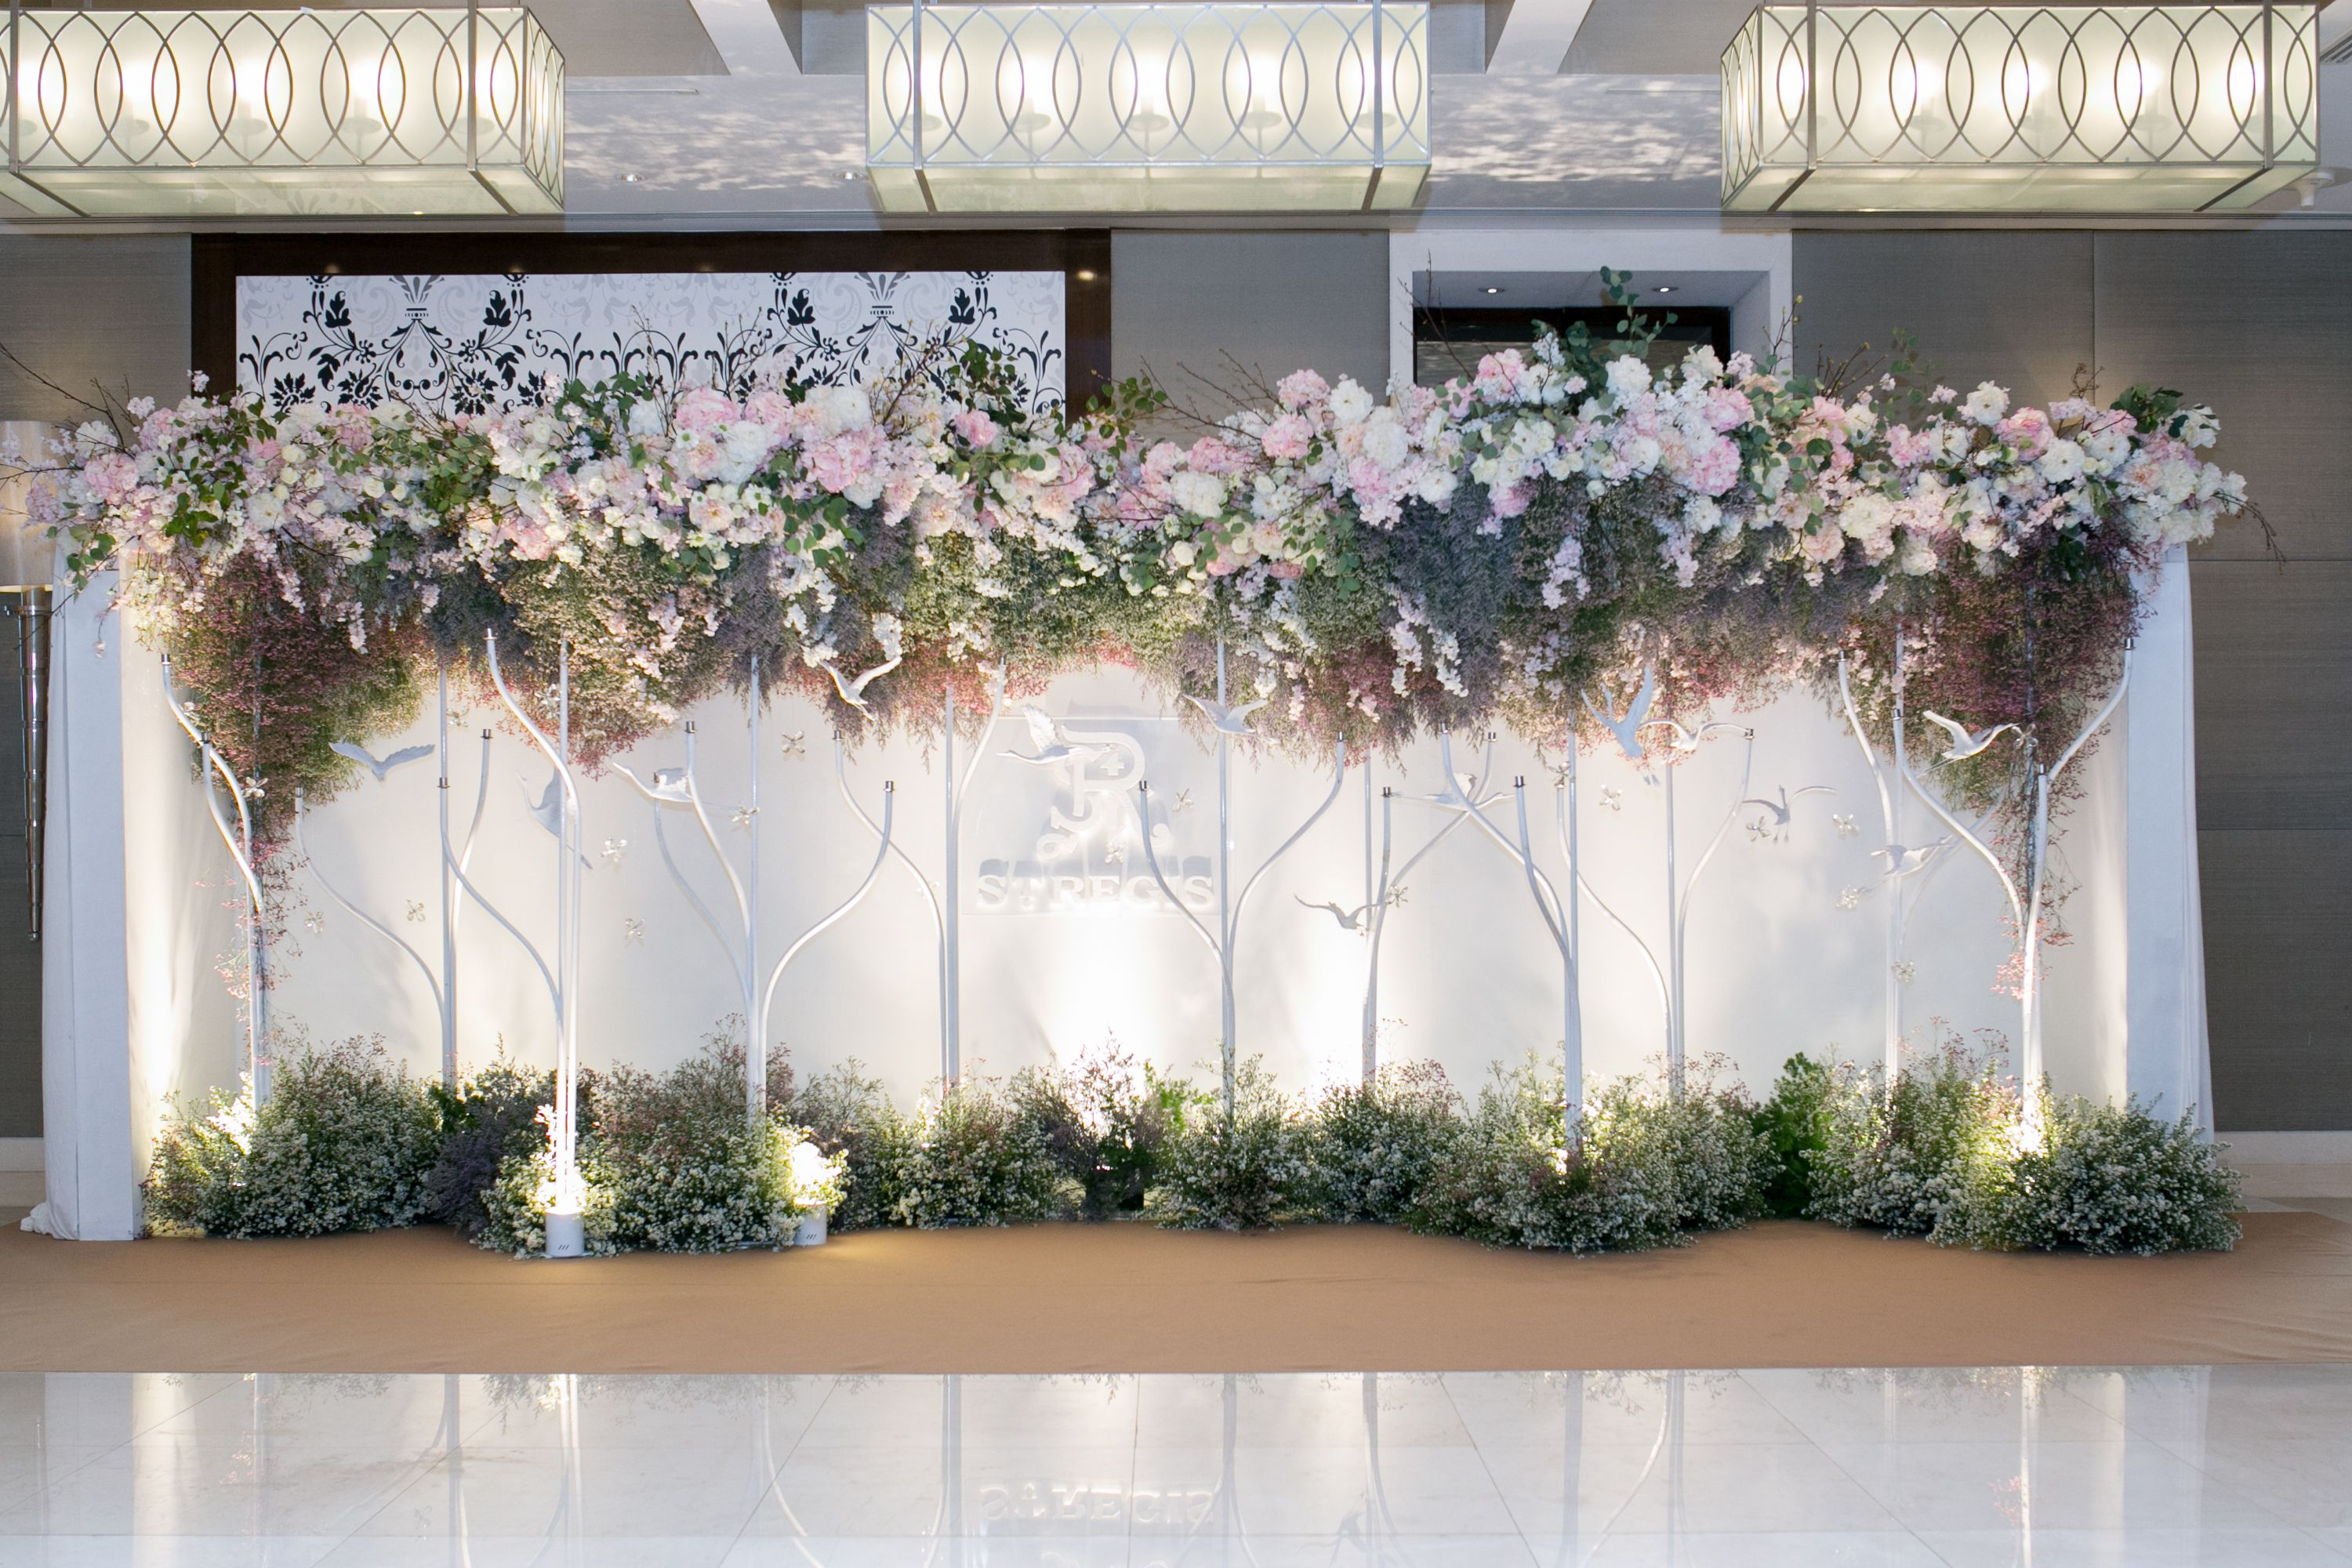 Weddings the st regis bangkok please contact our wedding specialist for more information phone 662 207 7777 email eventsngkokstregis junglespirit Choice Image